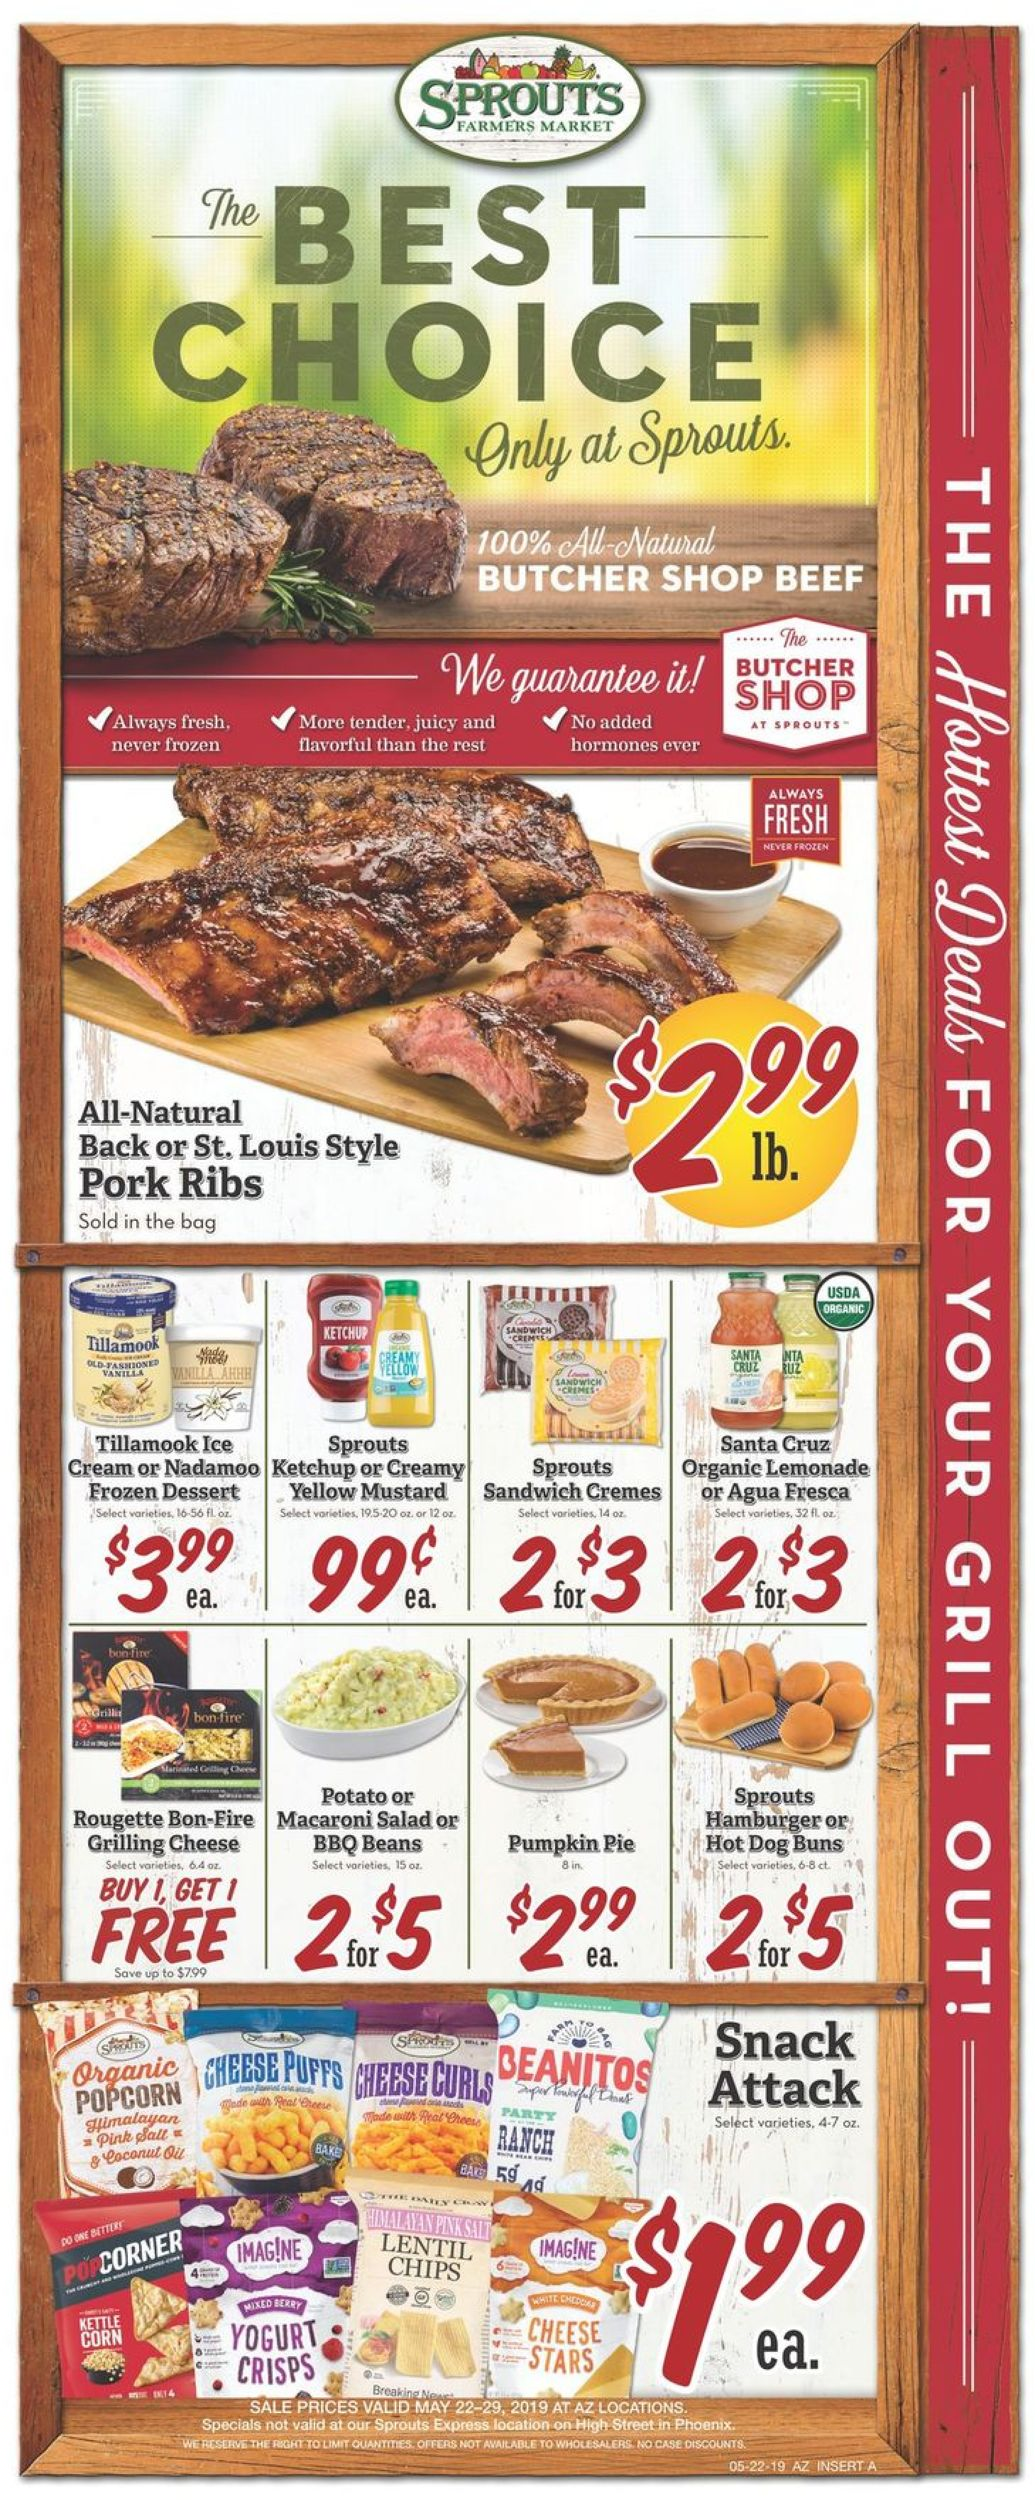 Sprouts Current weekly ad 05/22 - 05/29/2019 [4] - frequent-ads com